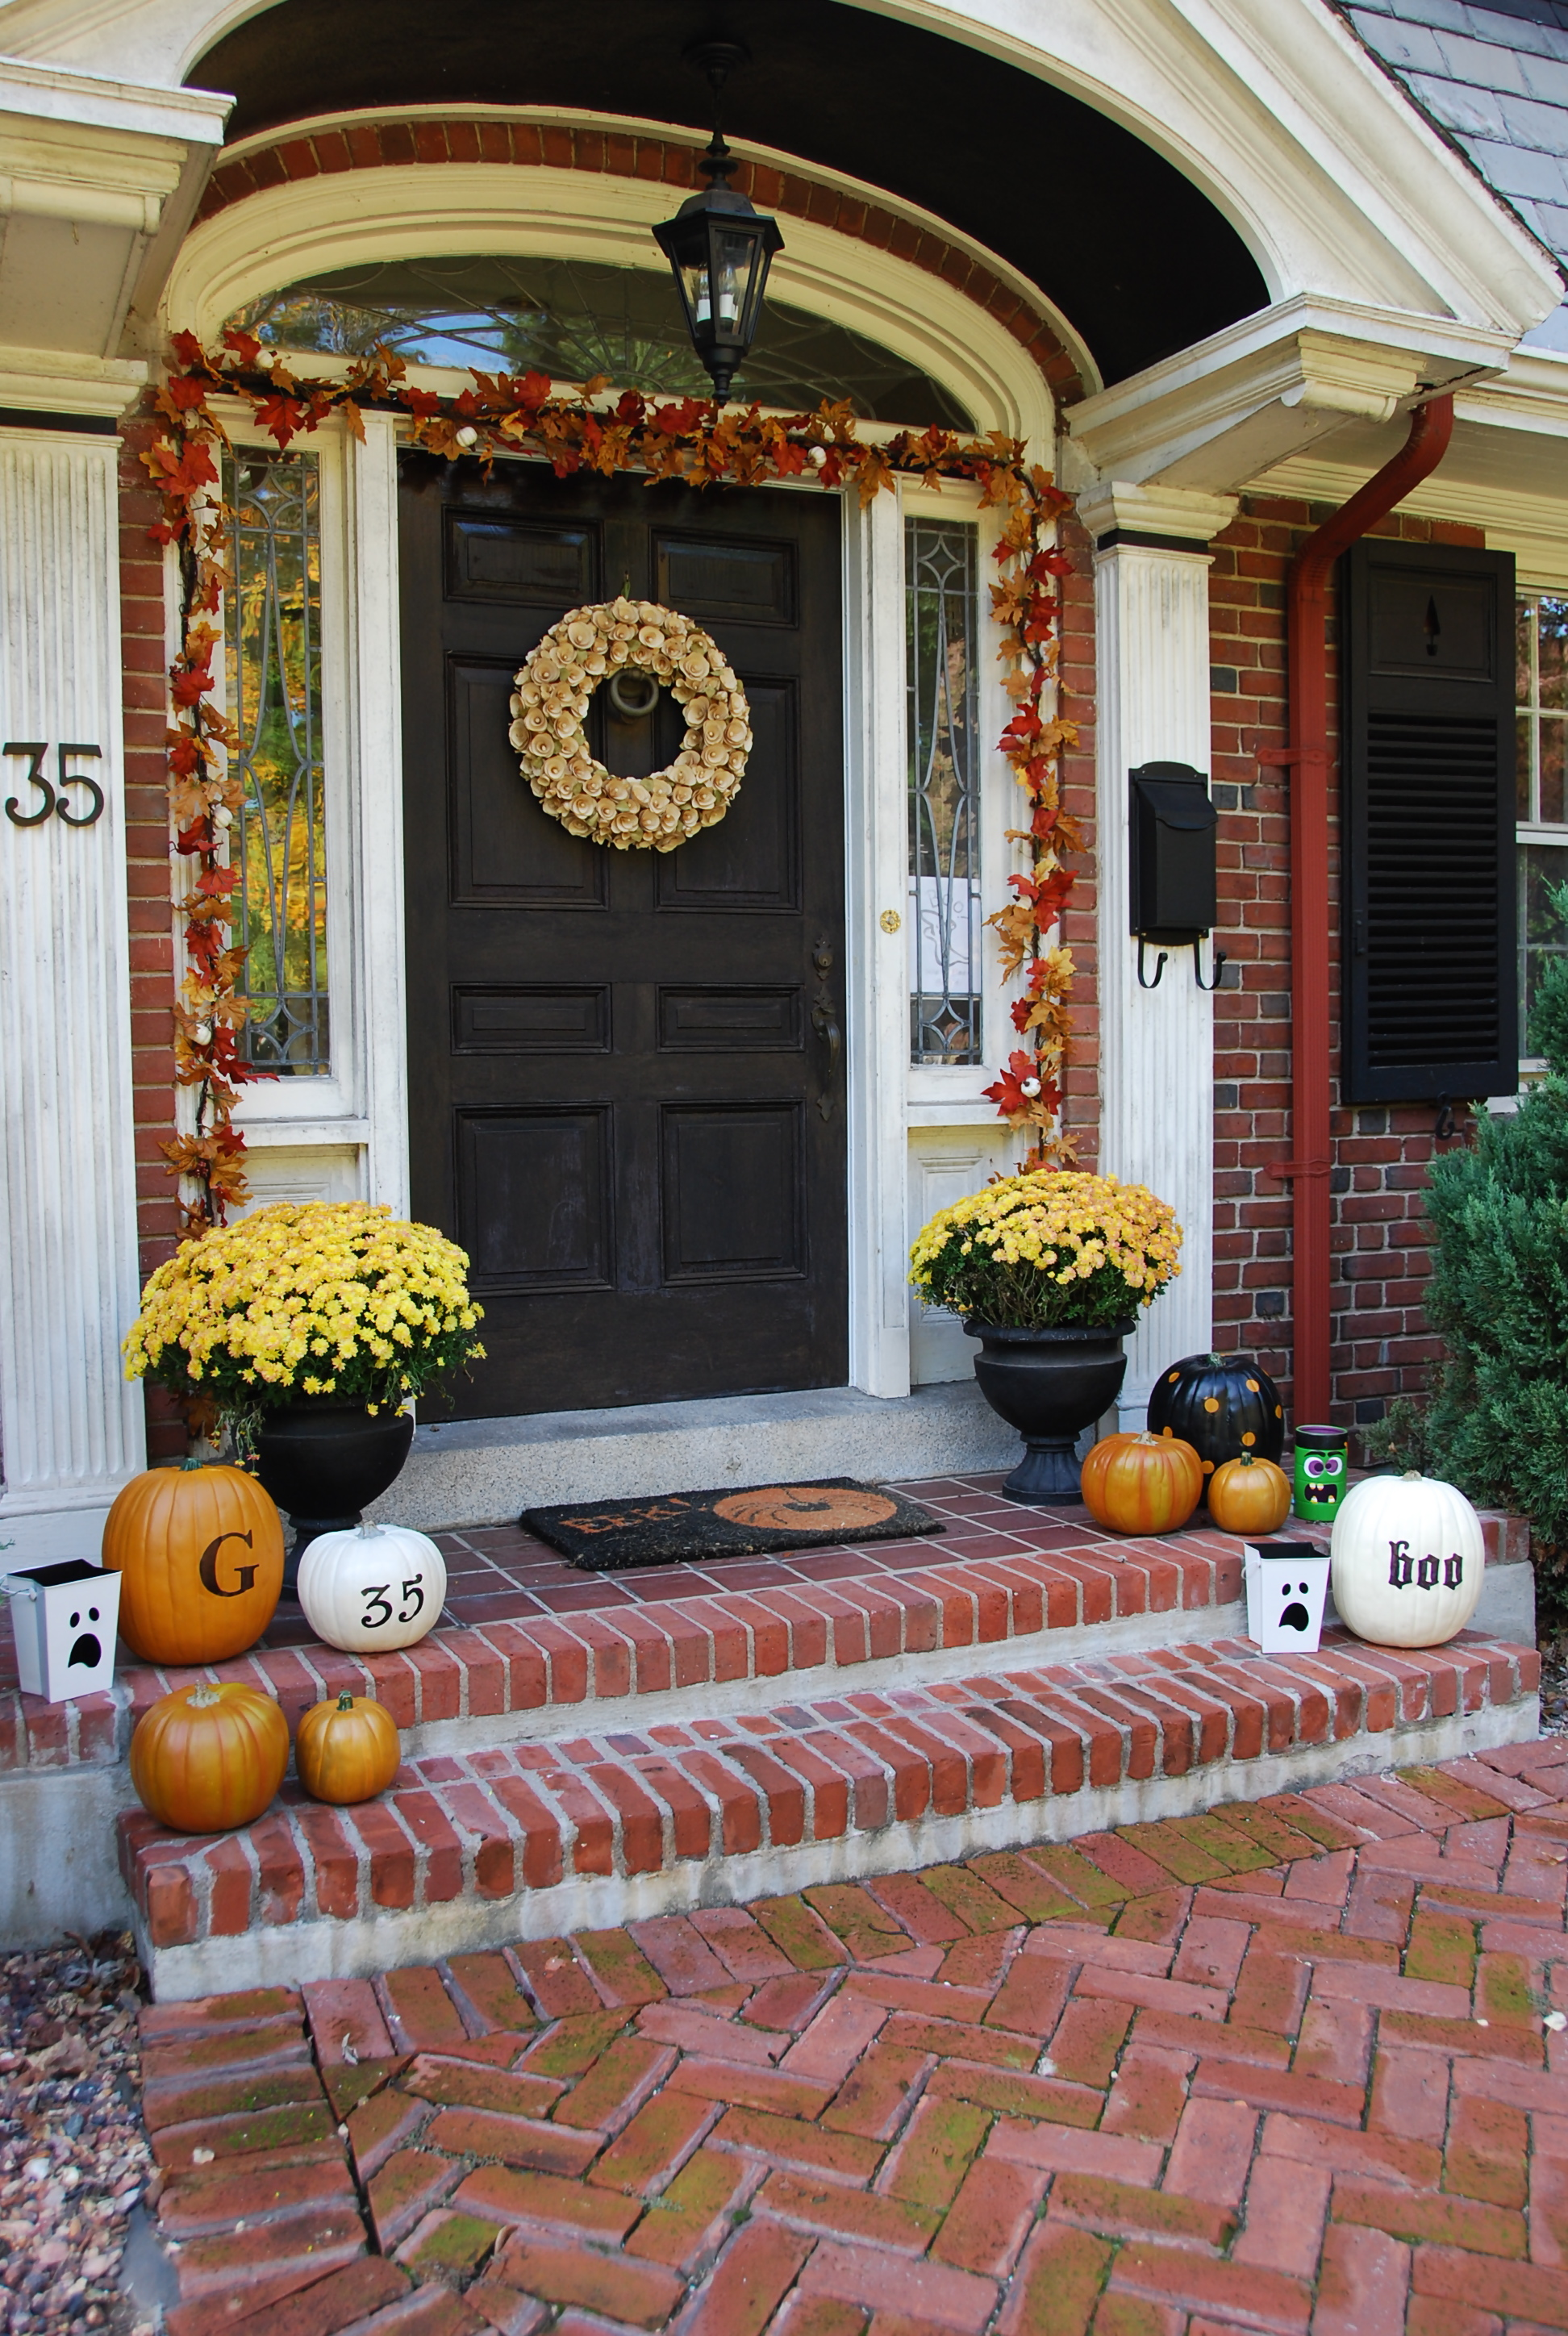 Personalized front door decorations - So